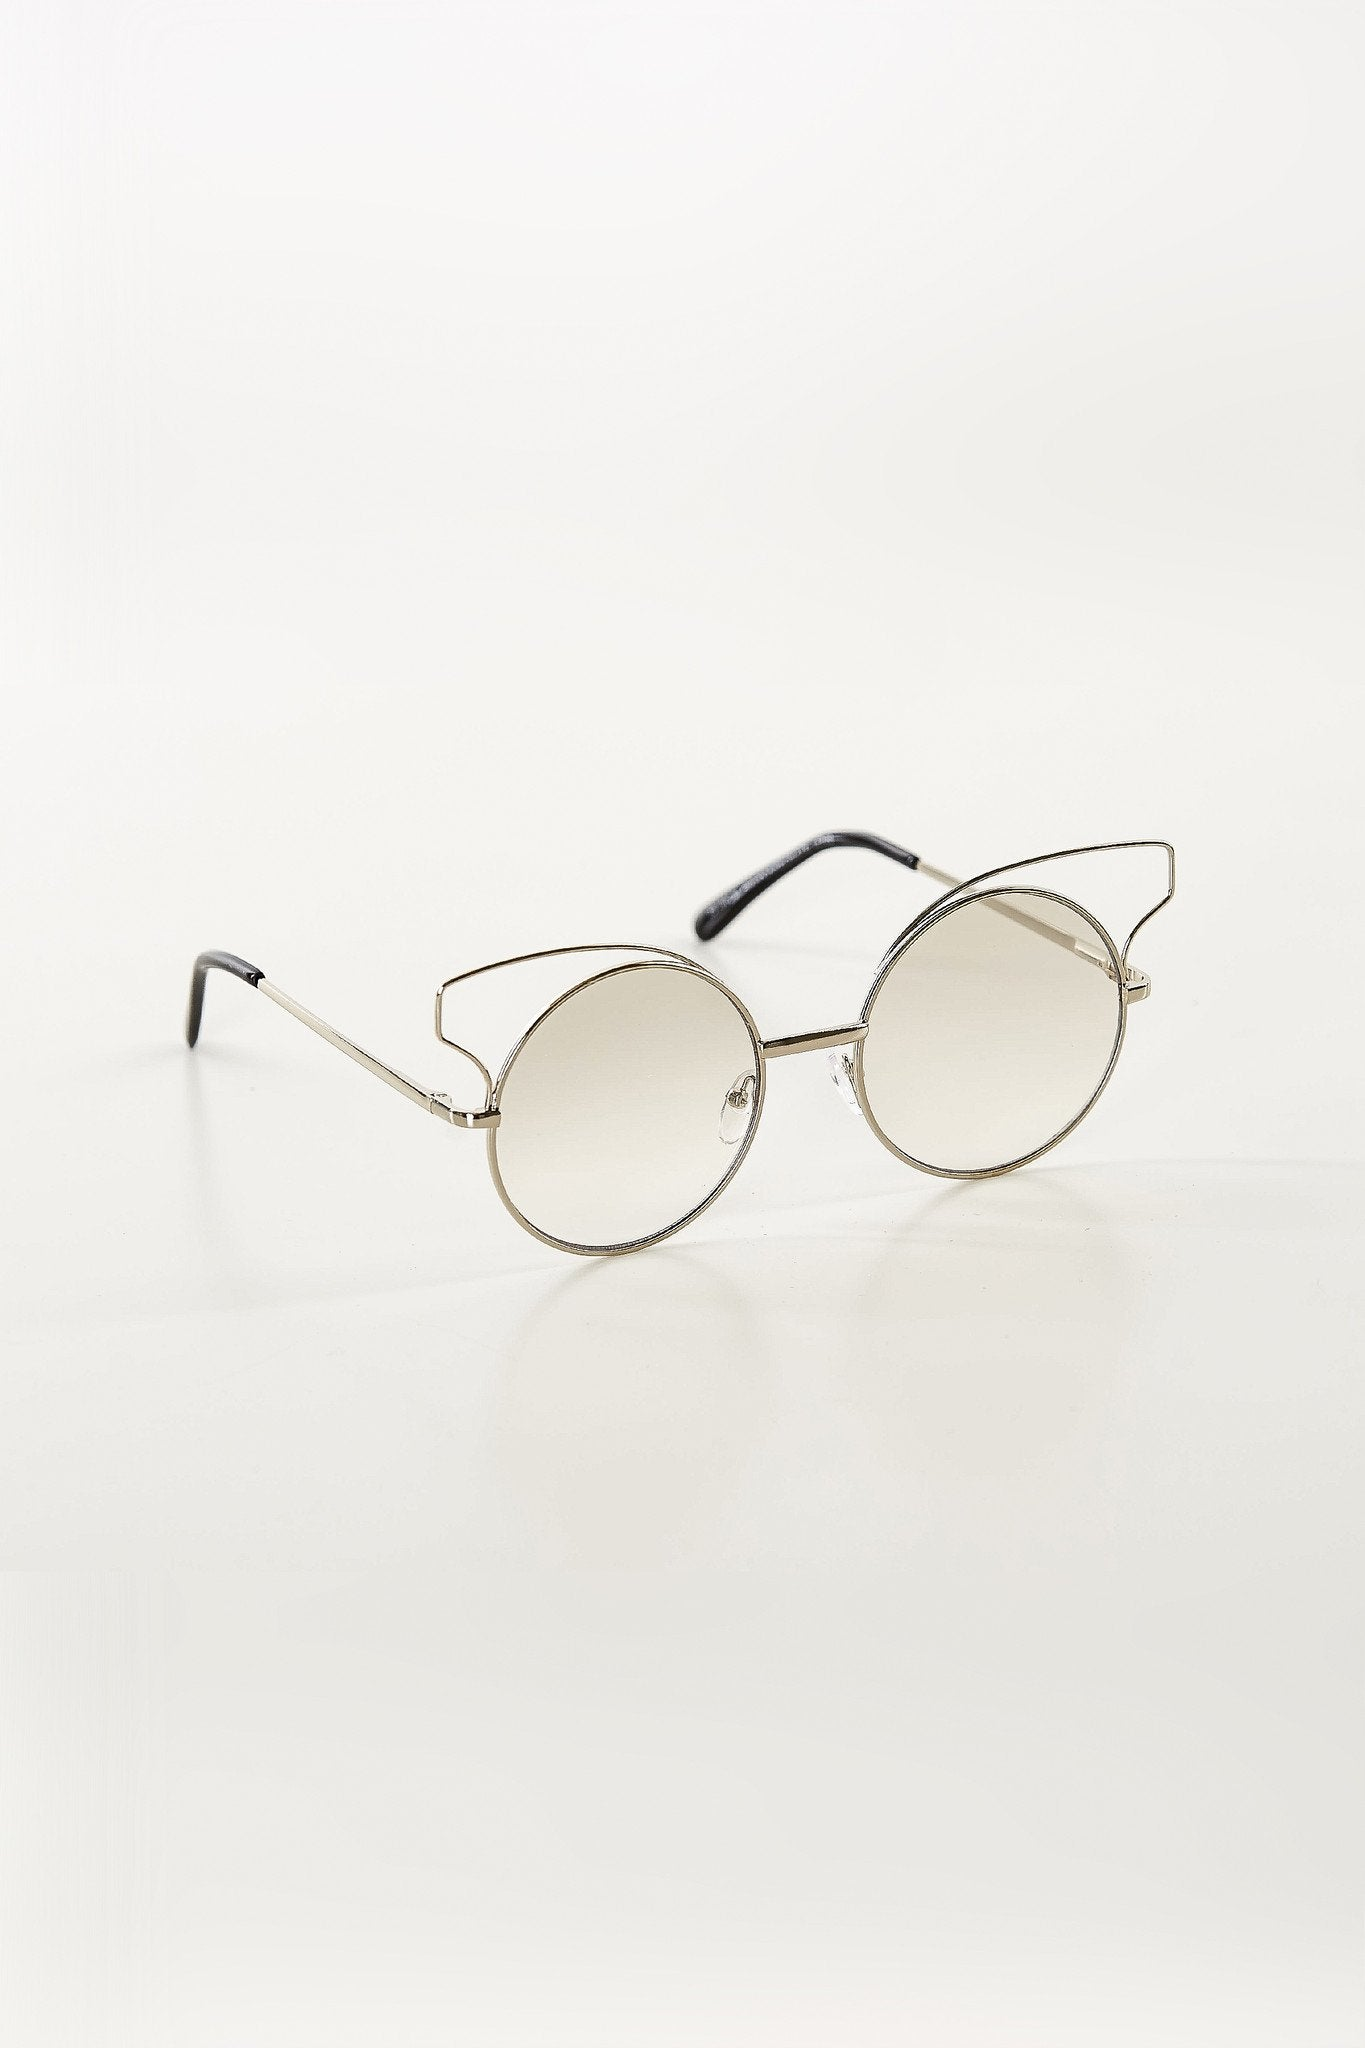 Round lenses with metal frames and cat eye design.